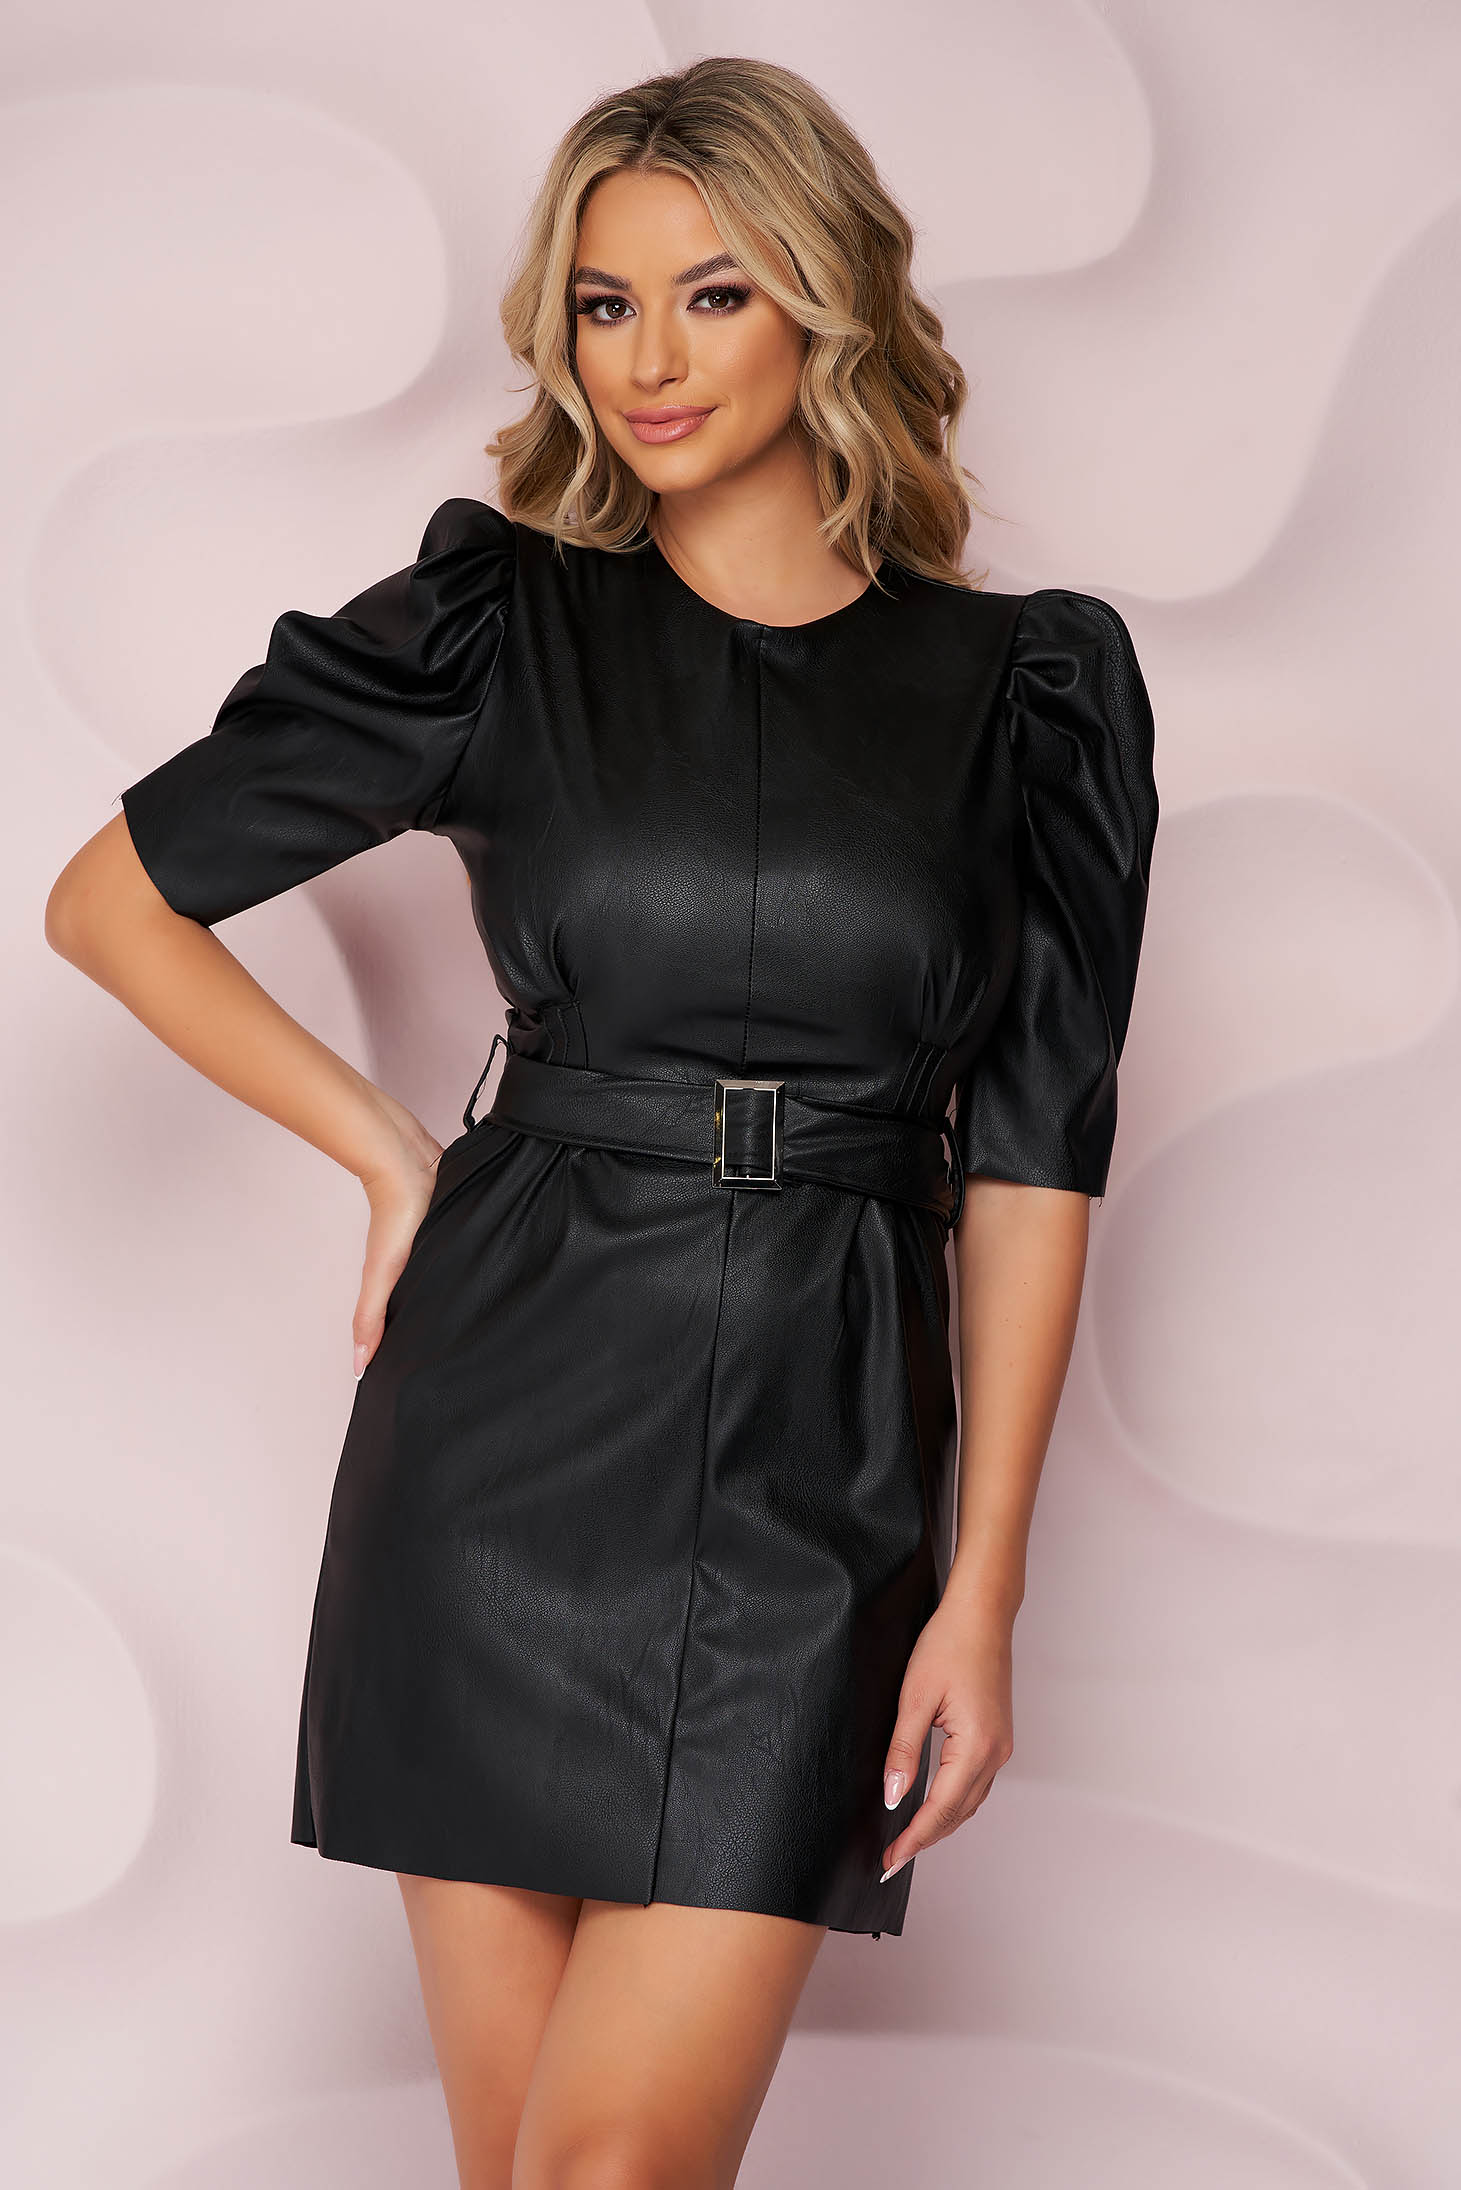 Black dress from ecological leather accessorized with belt with puffed sleeves short cut straight